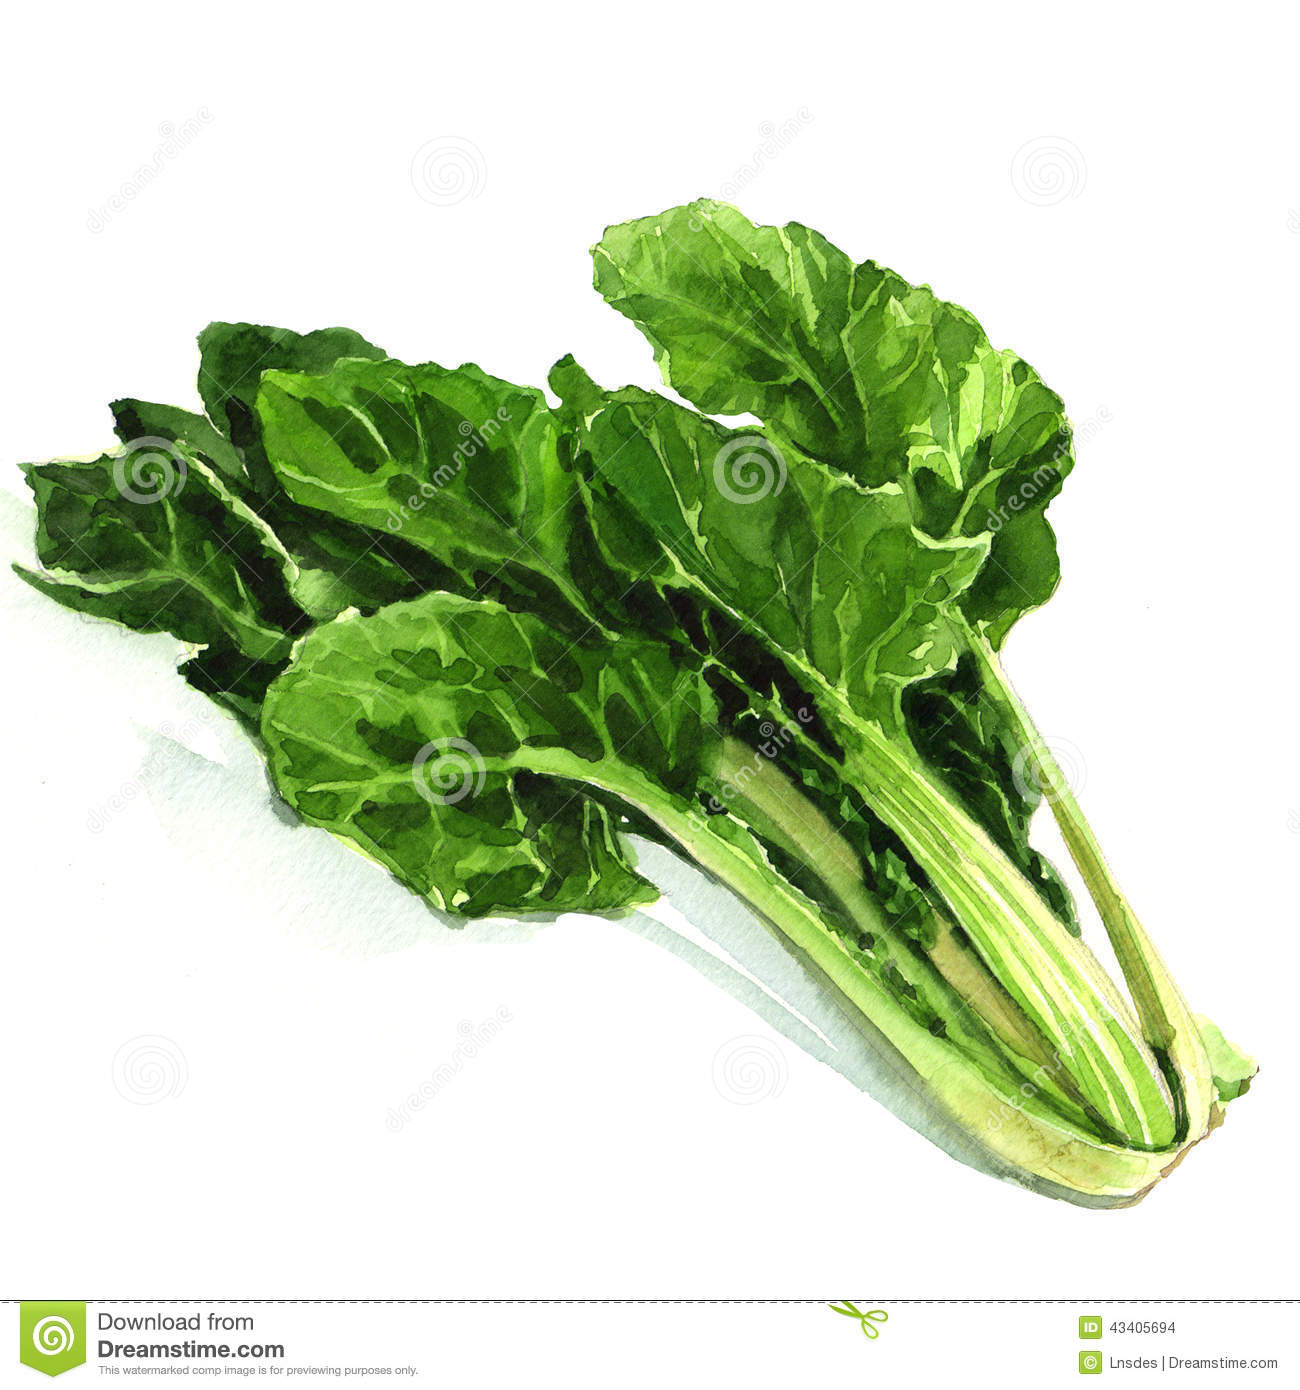 spinach leaves Spinach leaves are normally found in salads, but now they can be used as scaffolding for beating human heart cells.